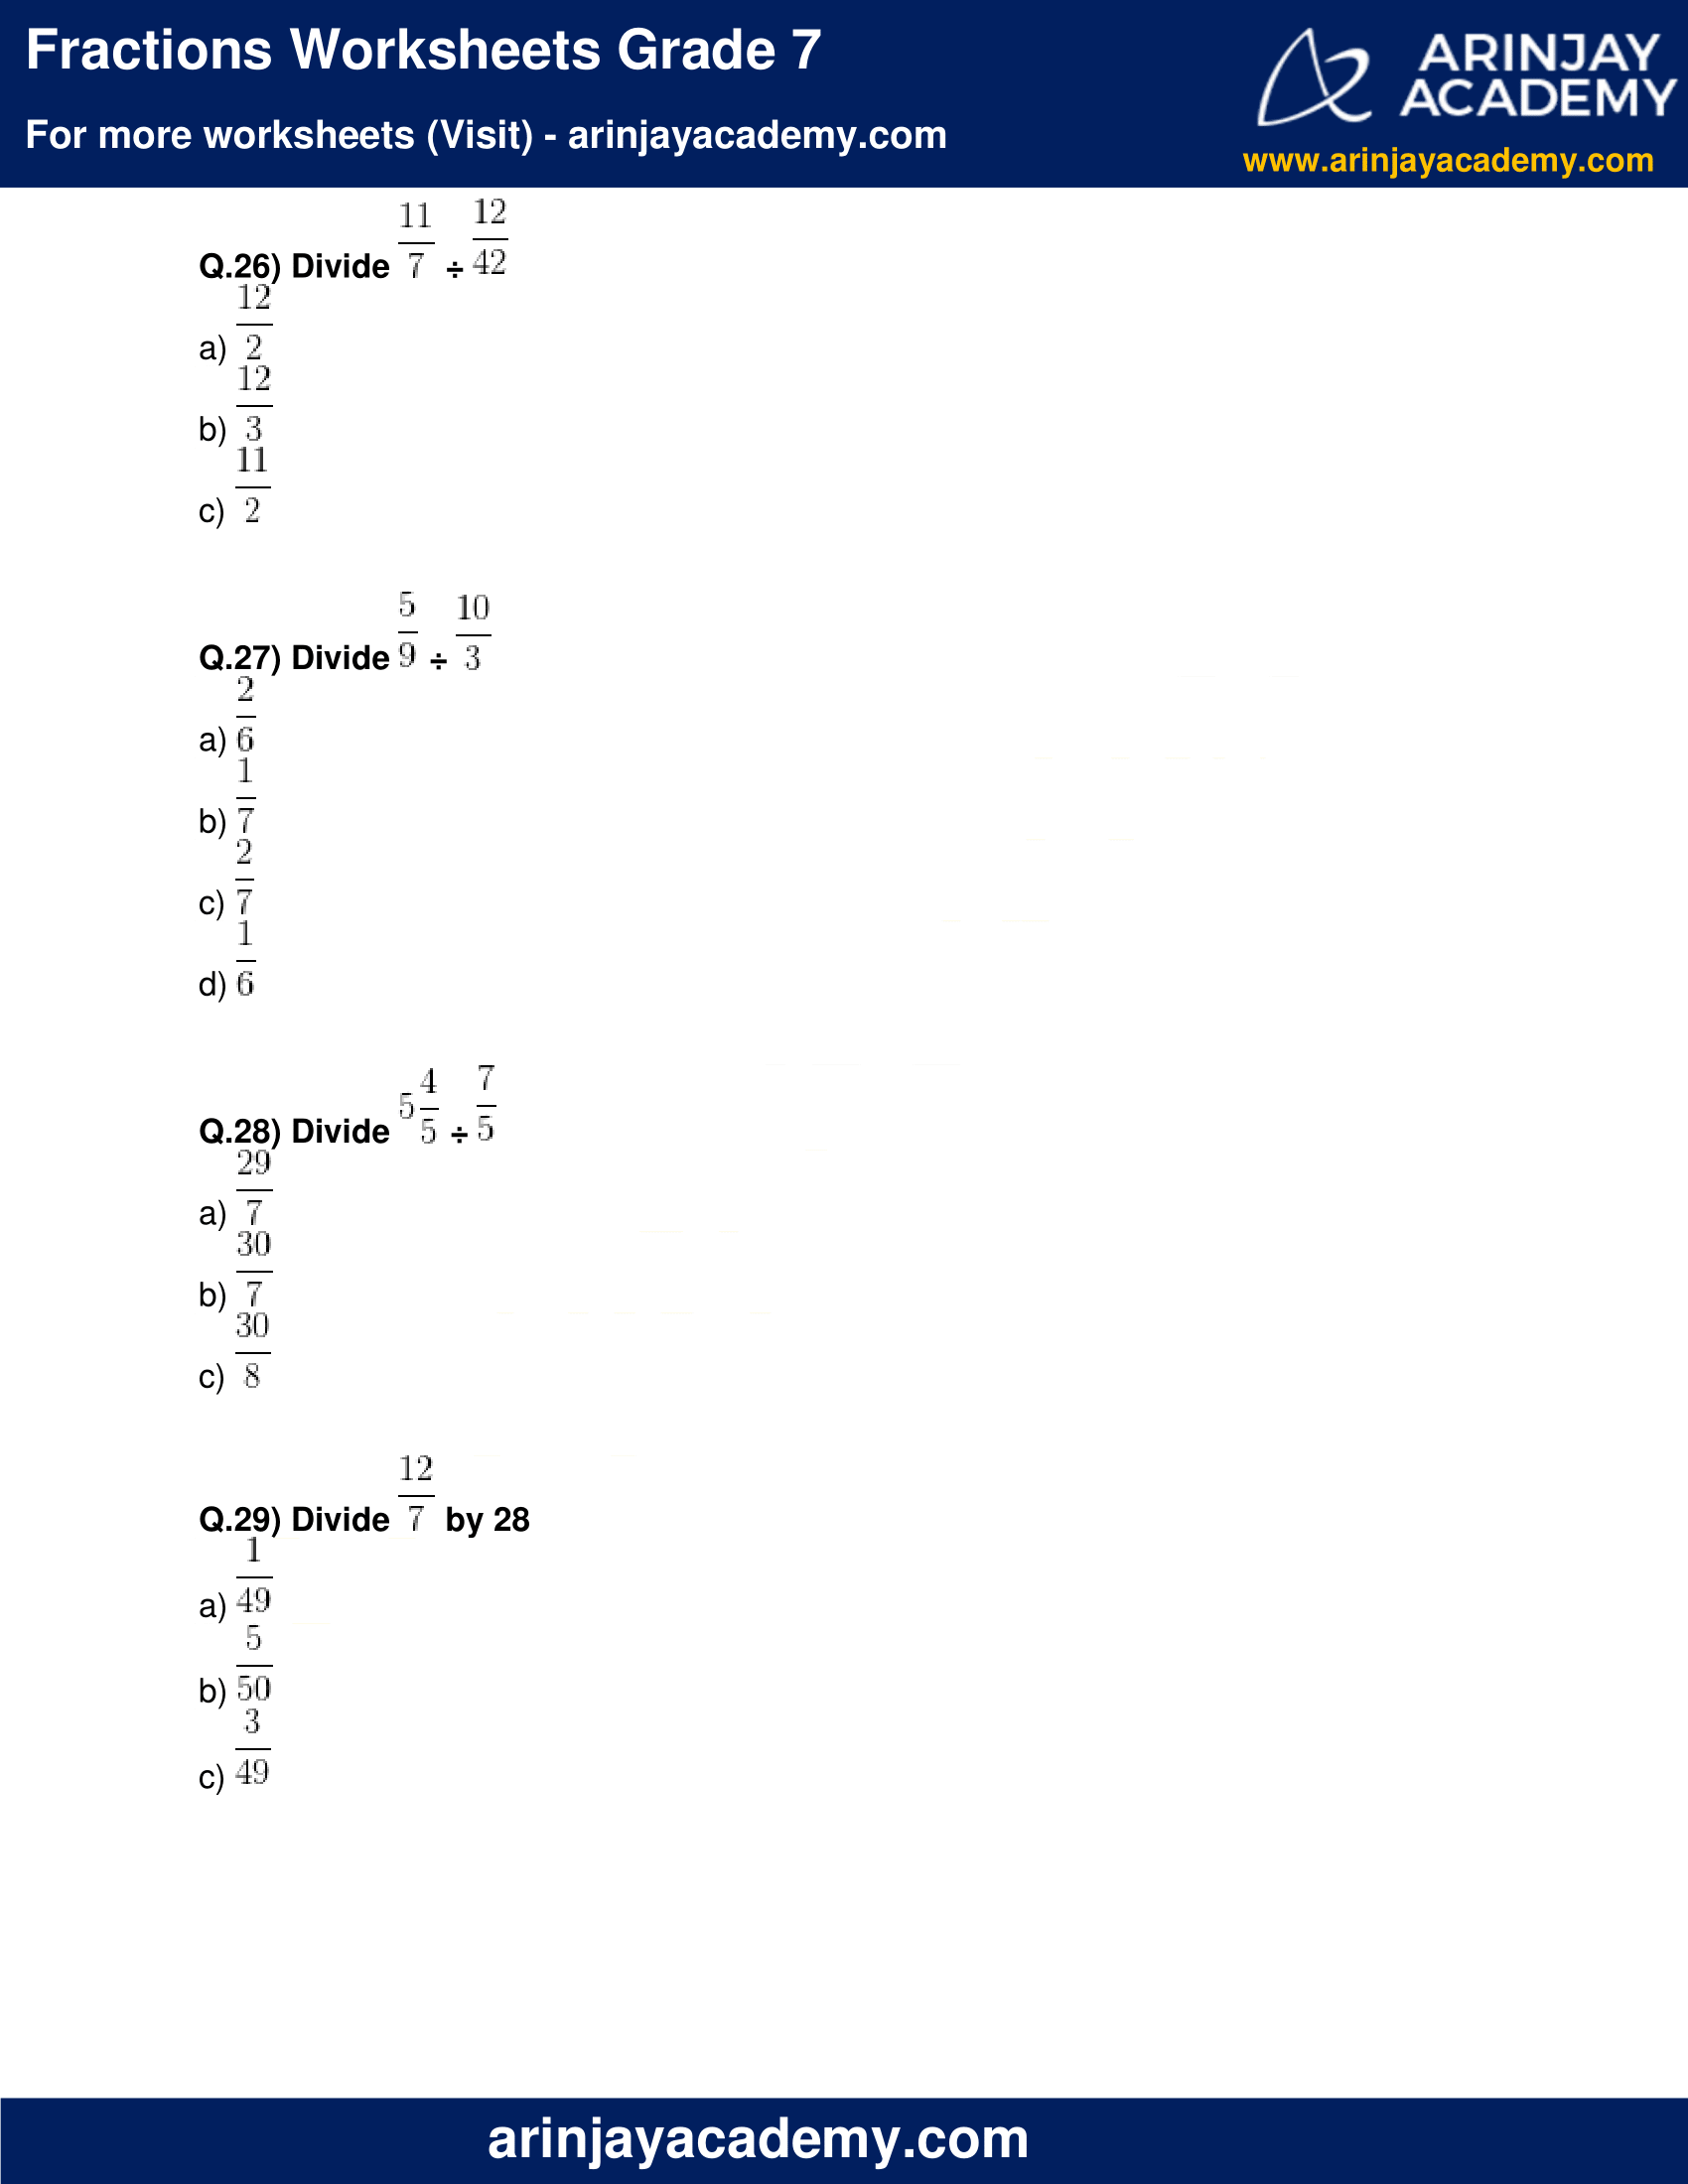 Fractions Worksheets Grade 7